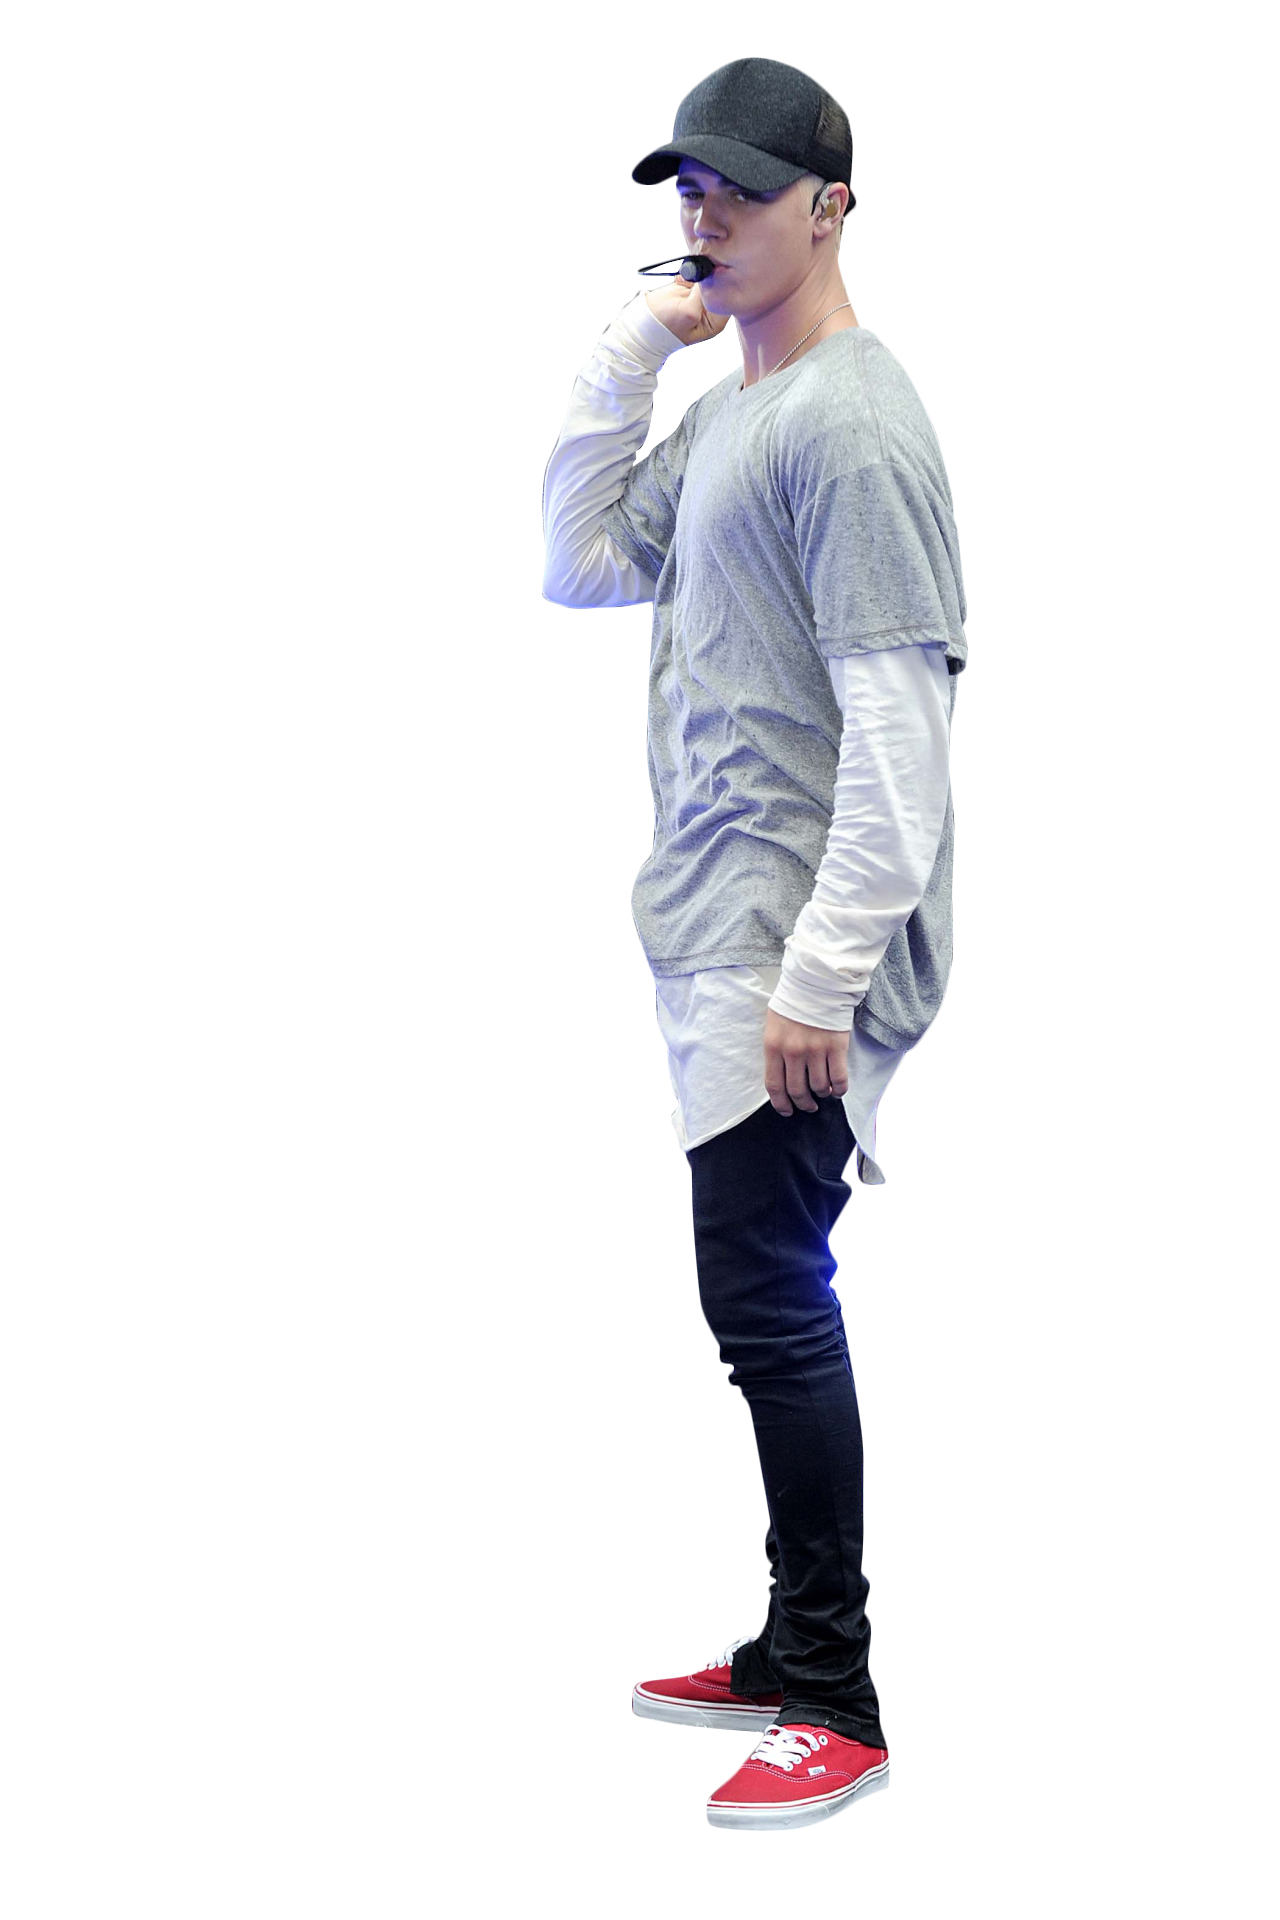 Justin Bieber Performing on Stage PNG Image